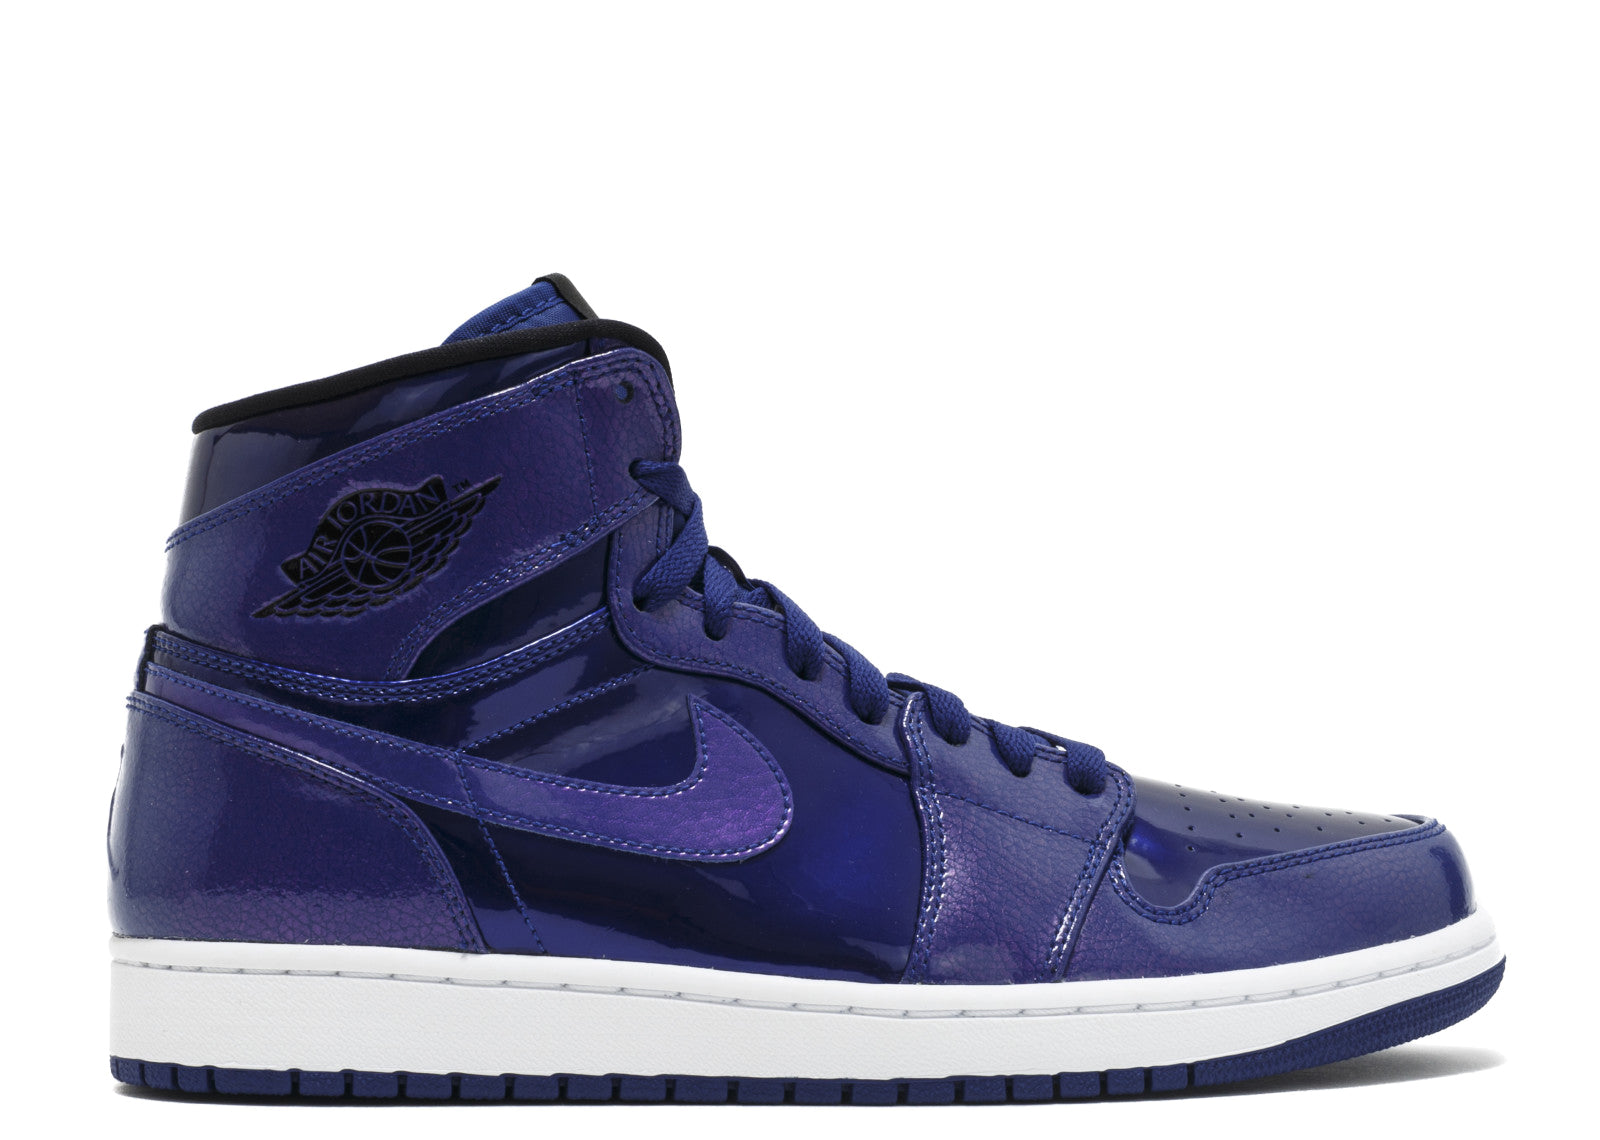 6f45760648c Air Jordan 1 Retro High 'Deep Royal' - Sneakest